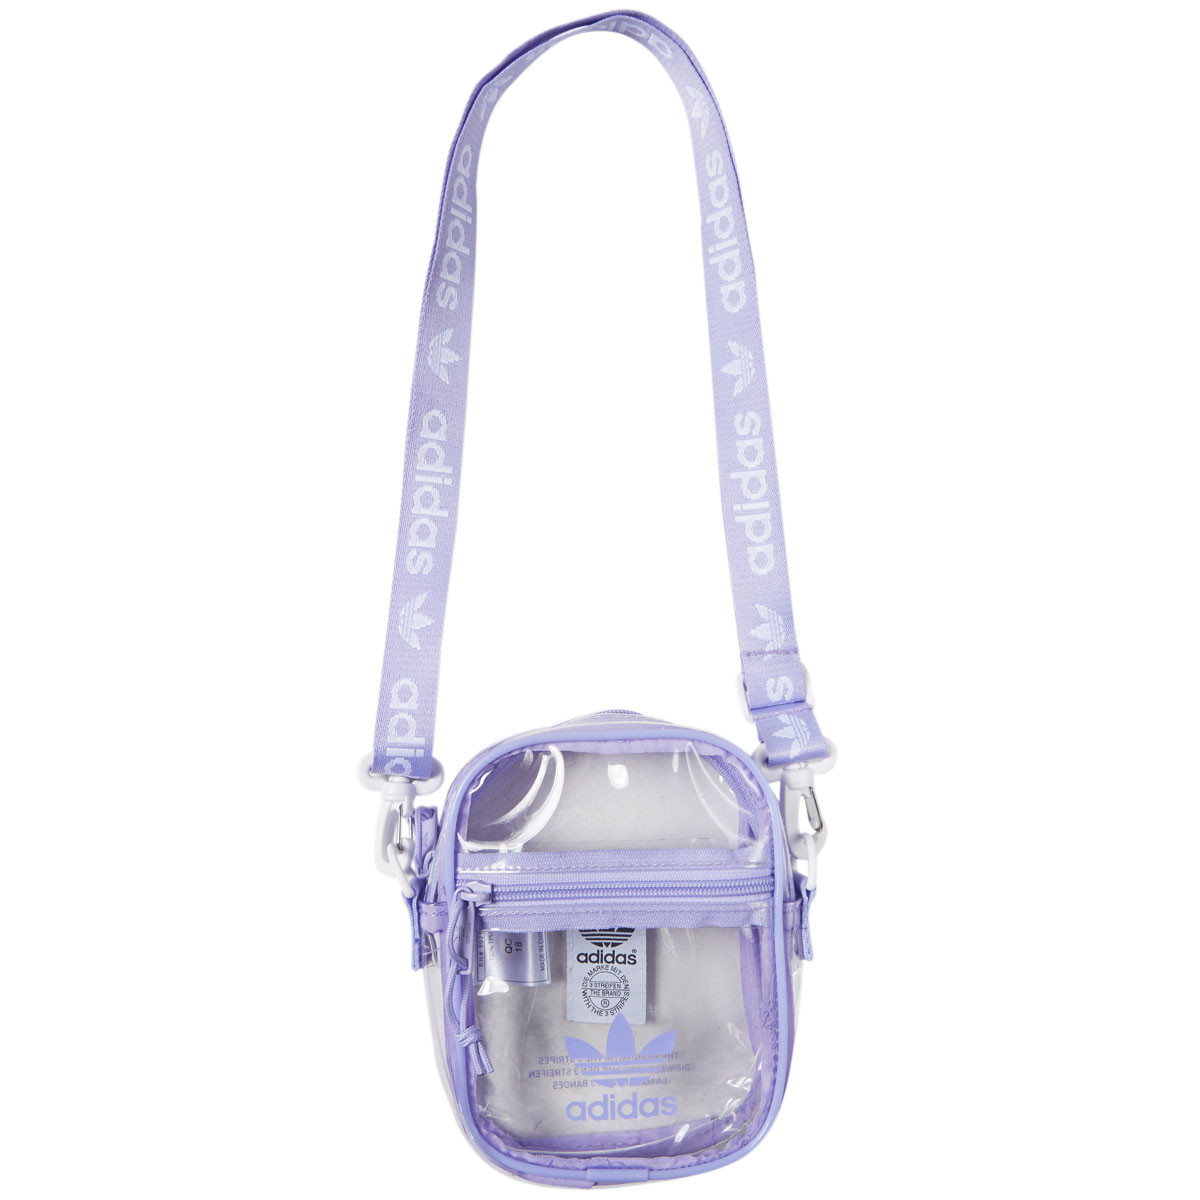 09f726ef7 Adidas Originals Clear Festival Crossbody Bag - Glow Purple